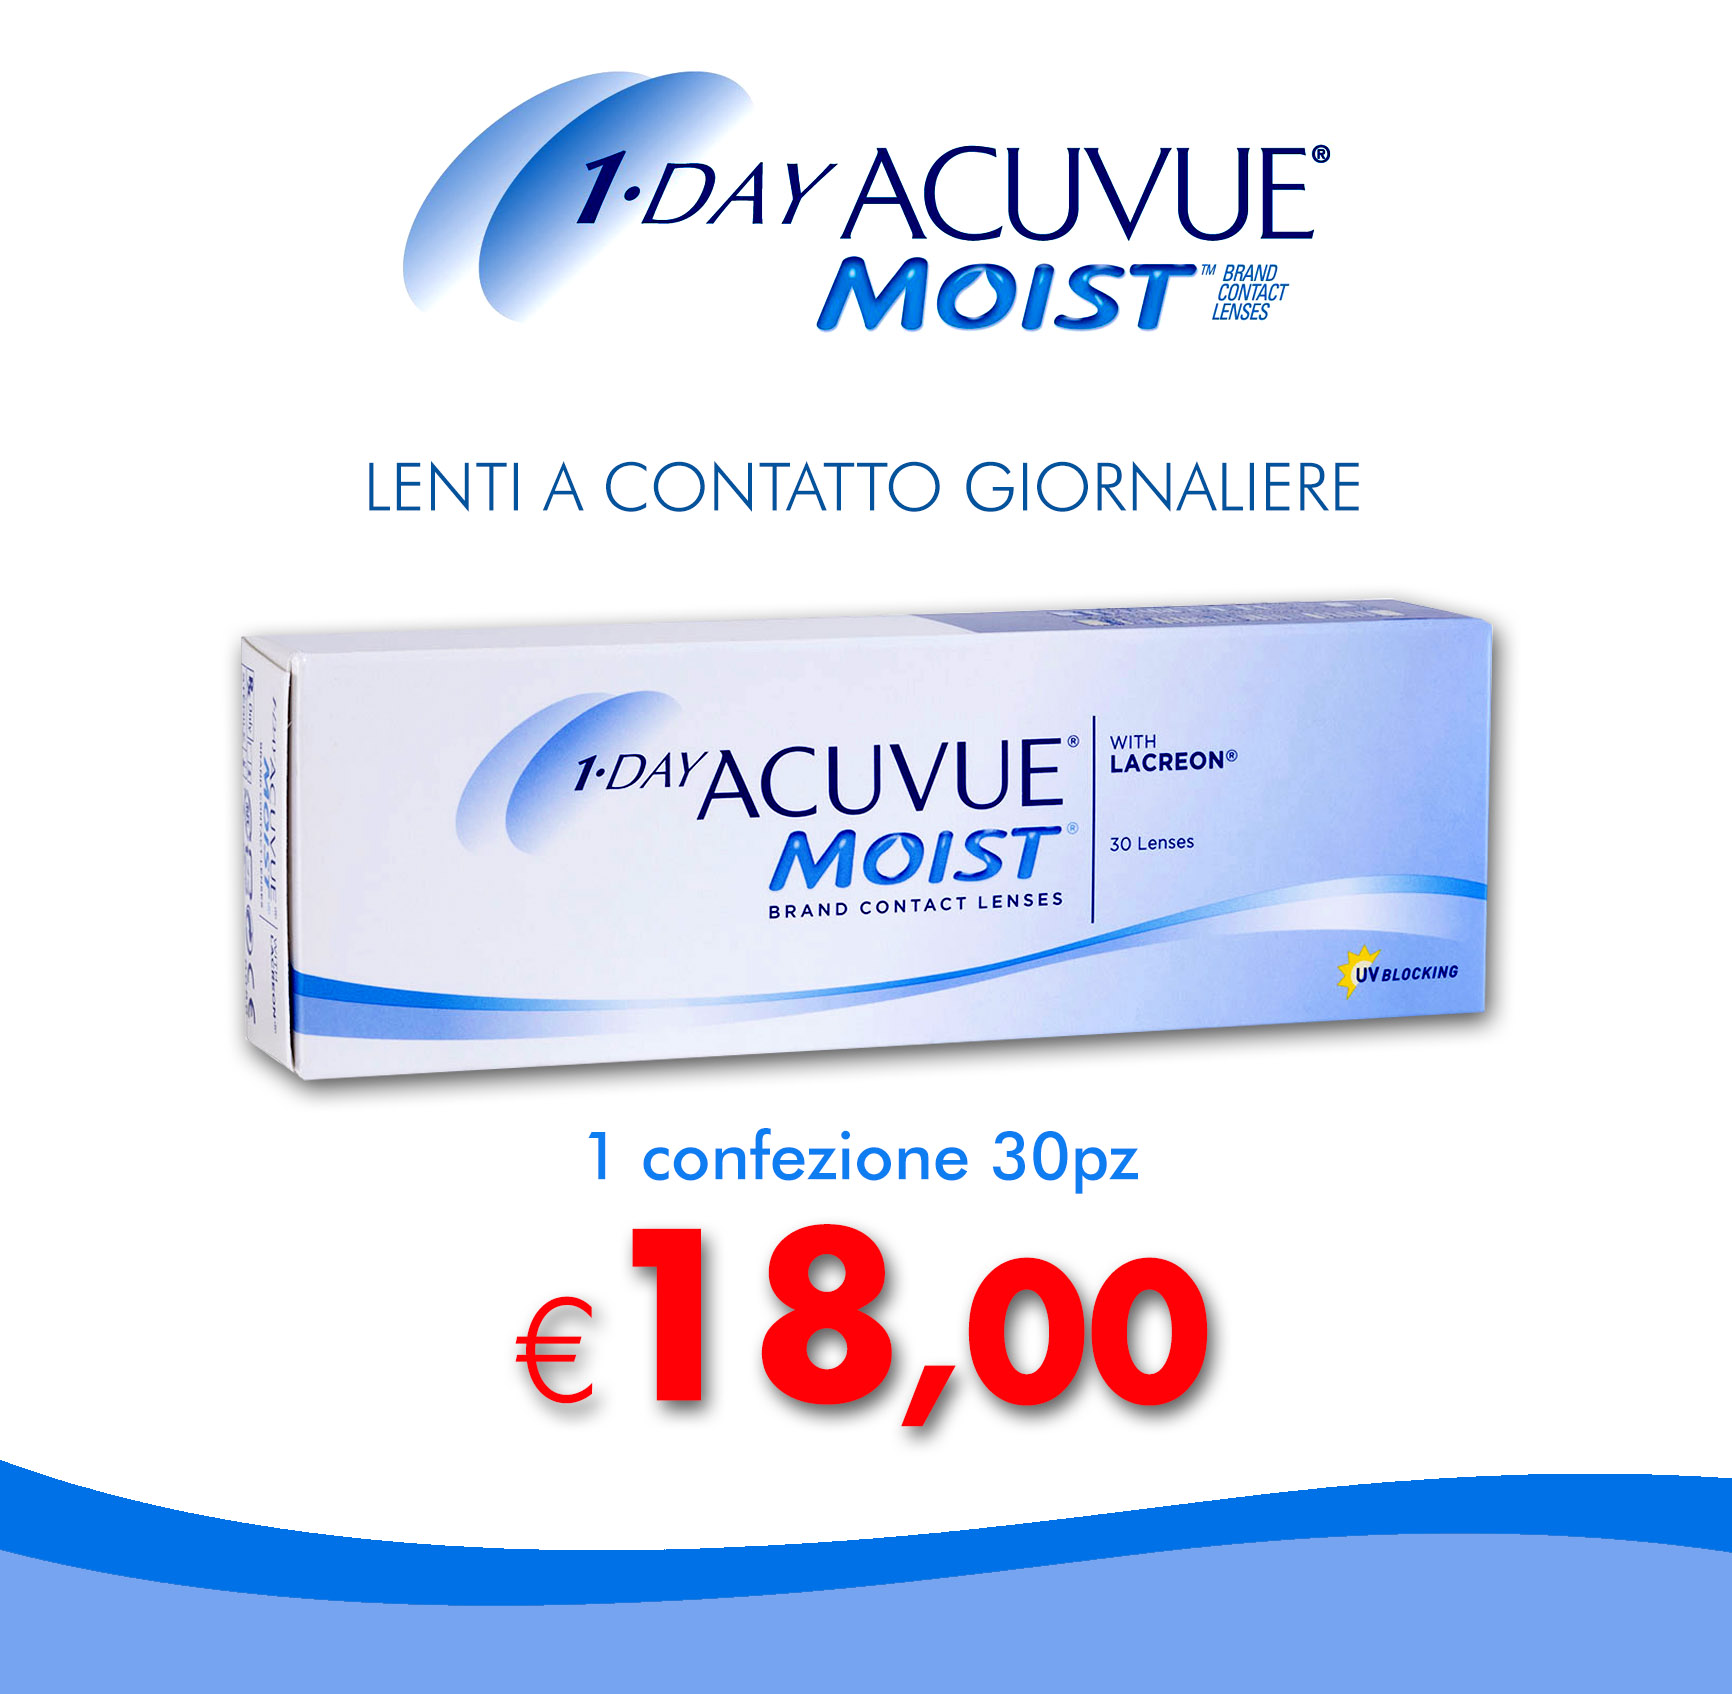 Acuvue Moist 1-Day